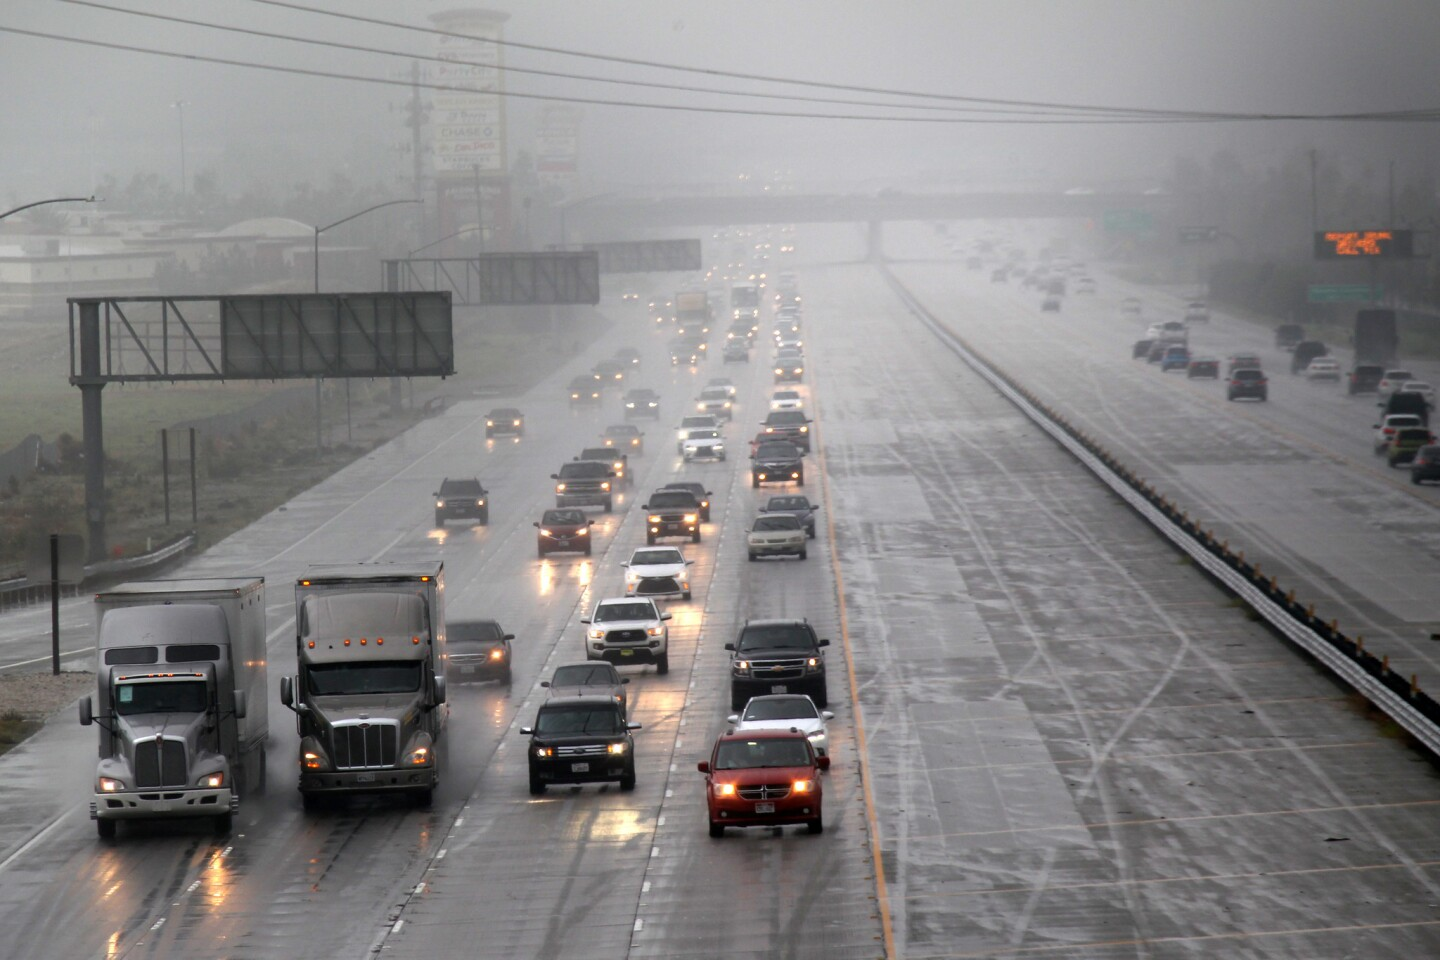 Traffic moves along I-15 North during a rainy morning Dec. 31, 2016 in Fontana.